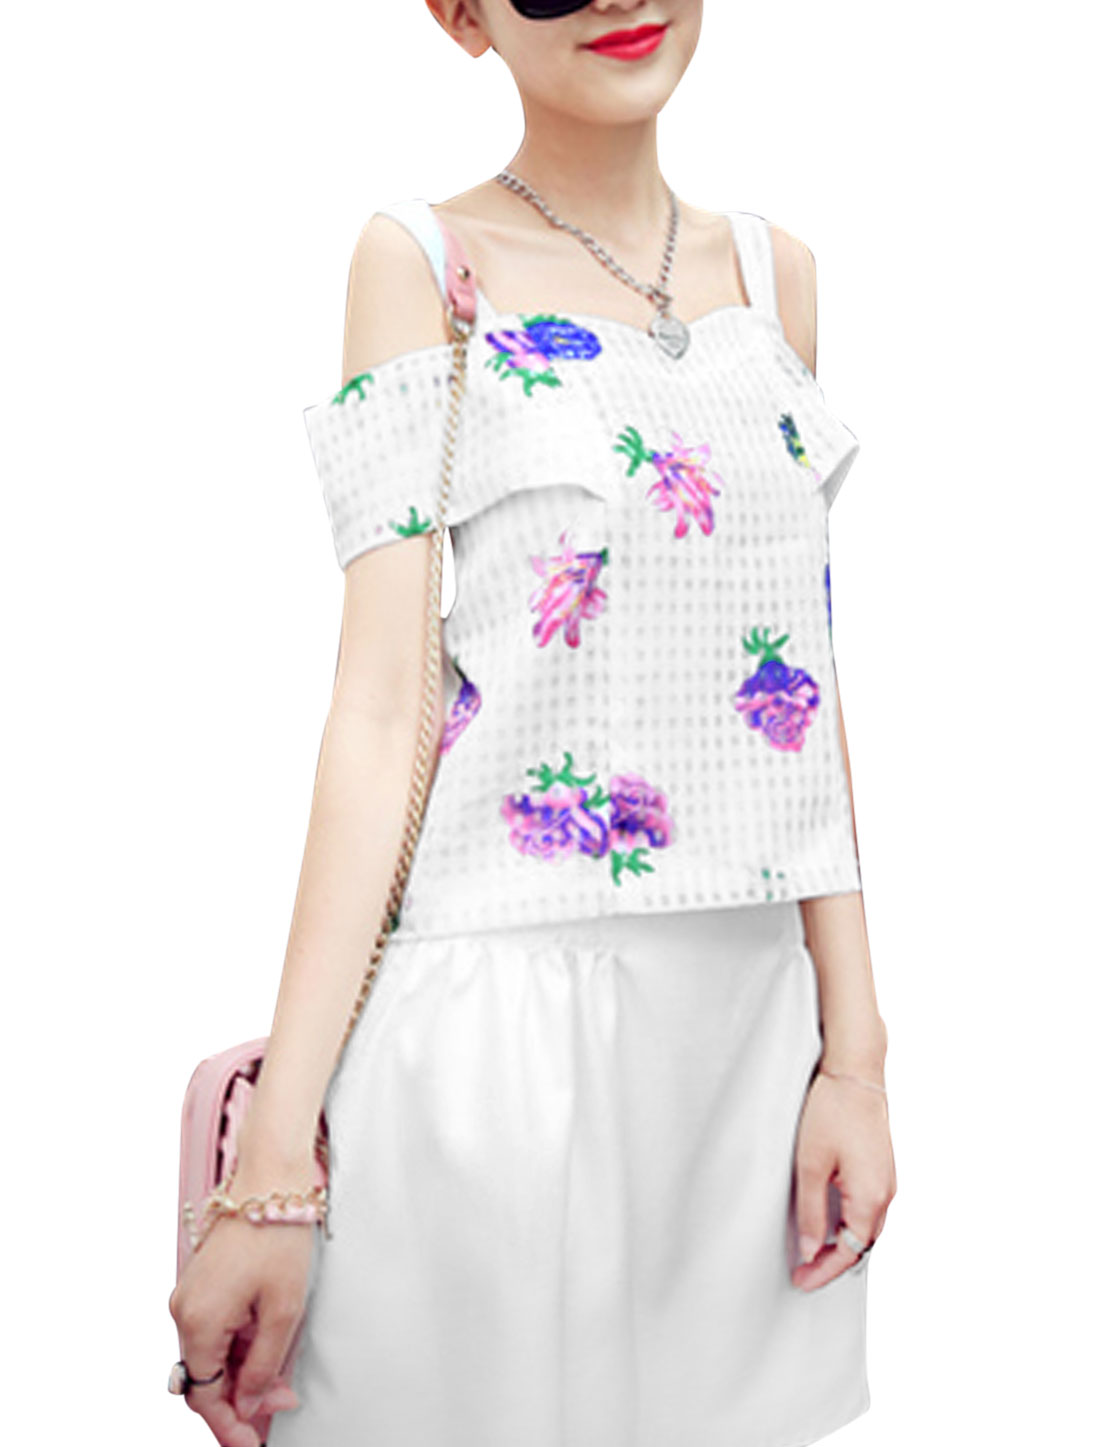 Women Cut Out Design Floral Prints Concealed Zipper Back Top White XS